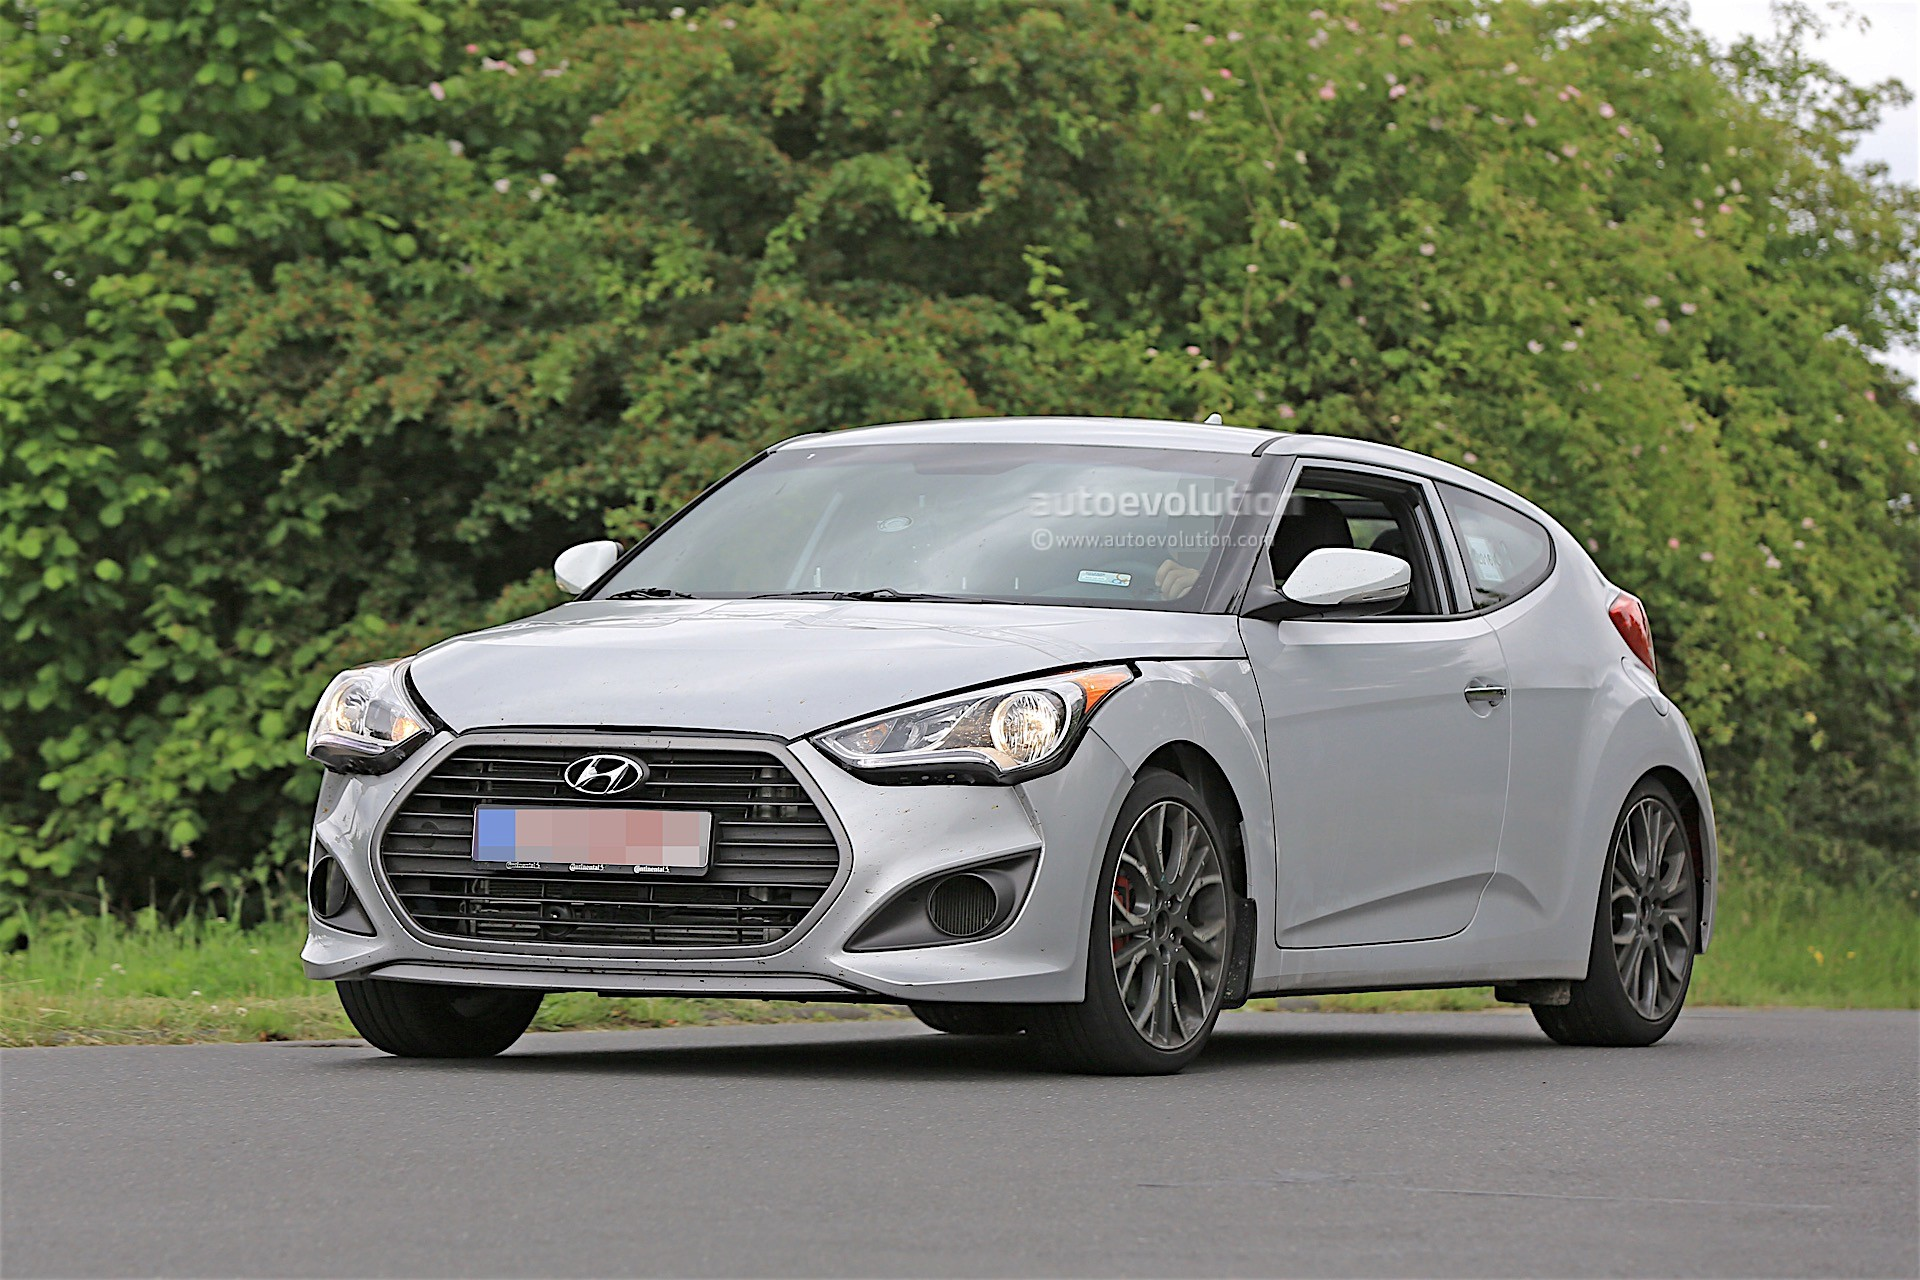 Hyundai Sonata Hybrid 2018 >> 2018 Hyundai Veloster Spied, Could Get Independent Rear Suspension - autoevolution